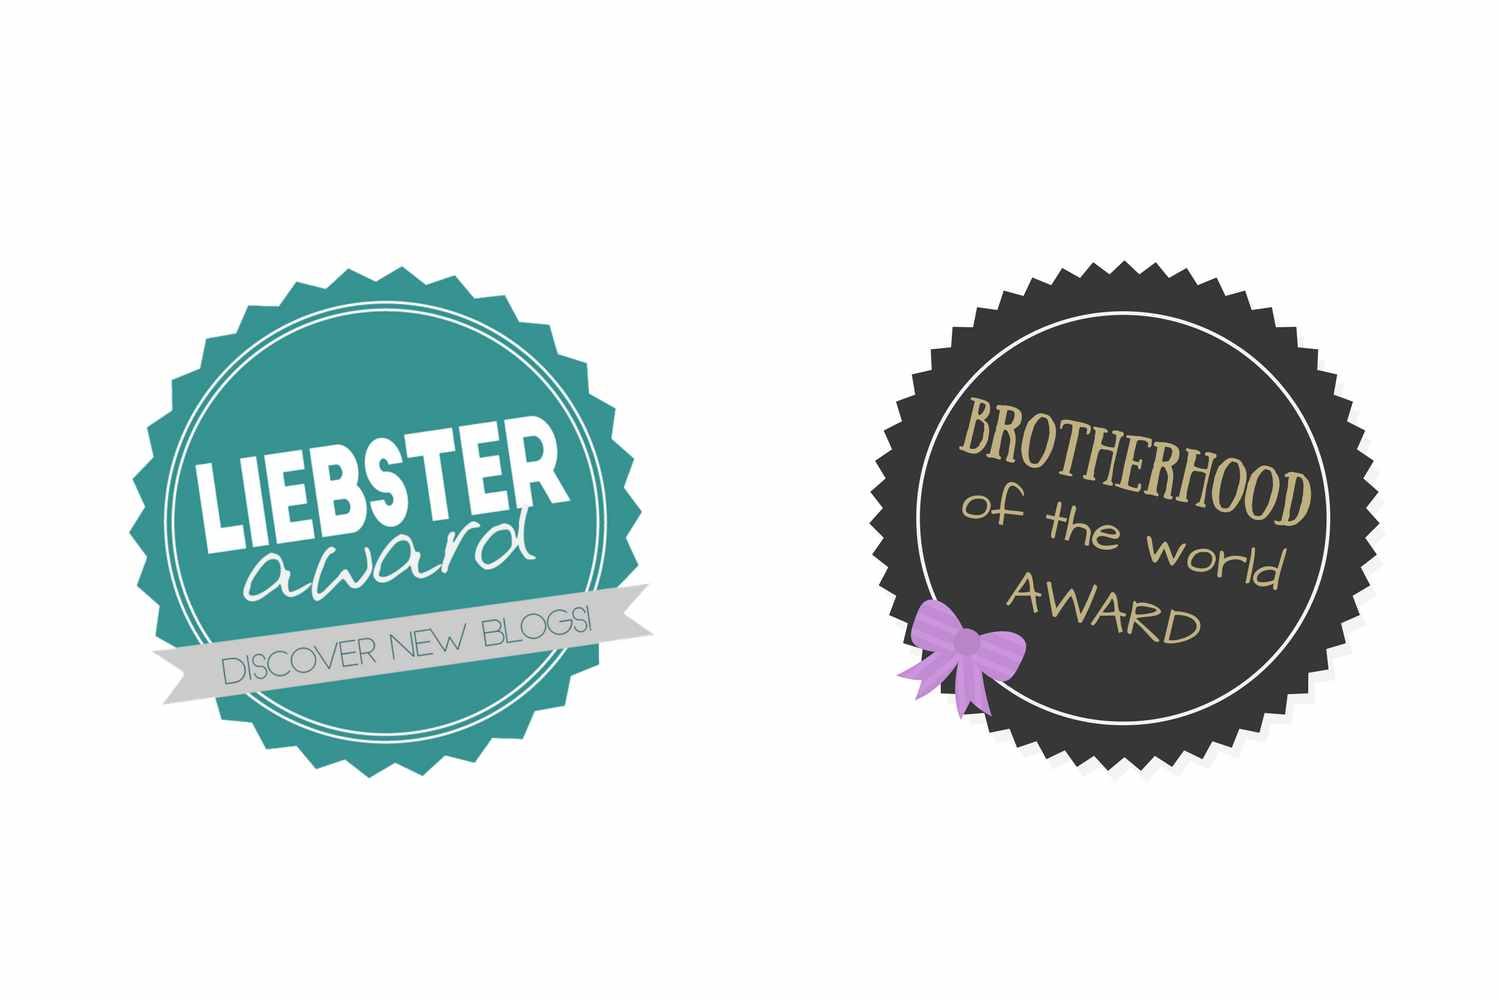 Liebster Award & Brotherhood of the World Award